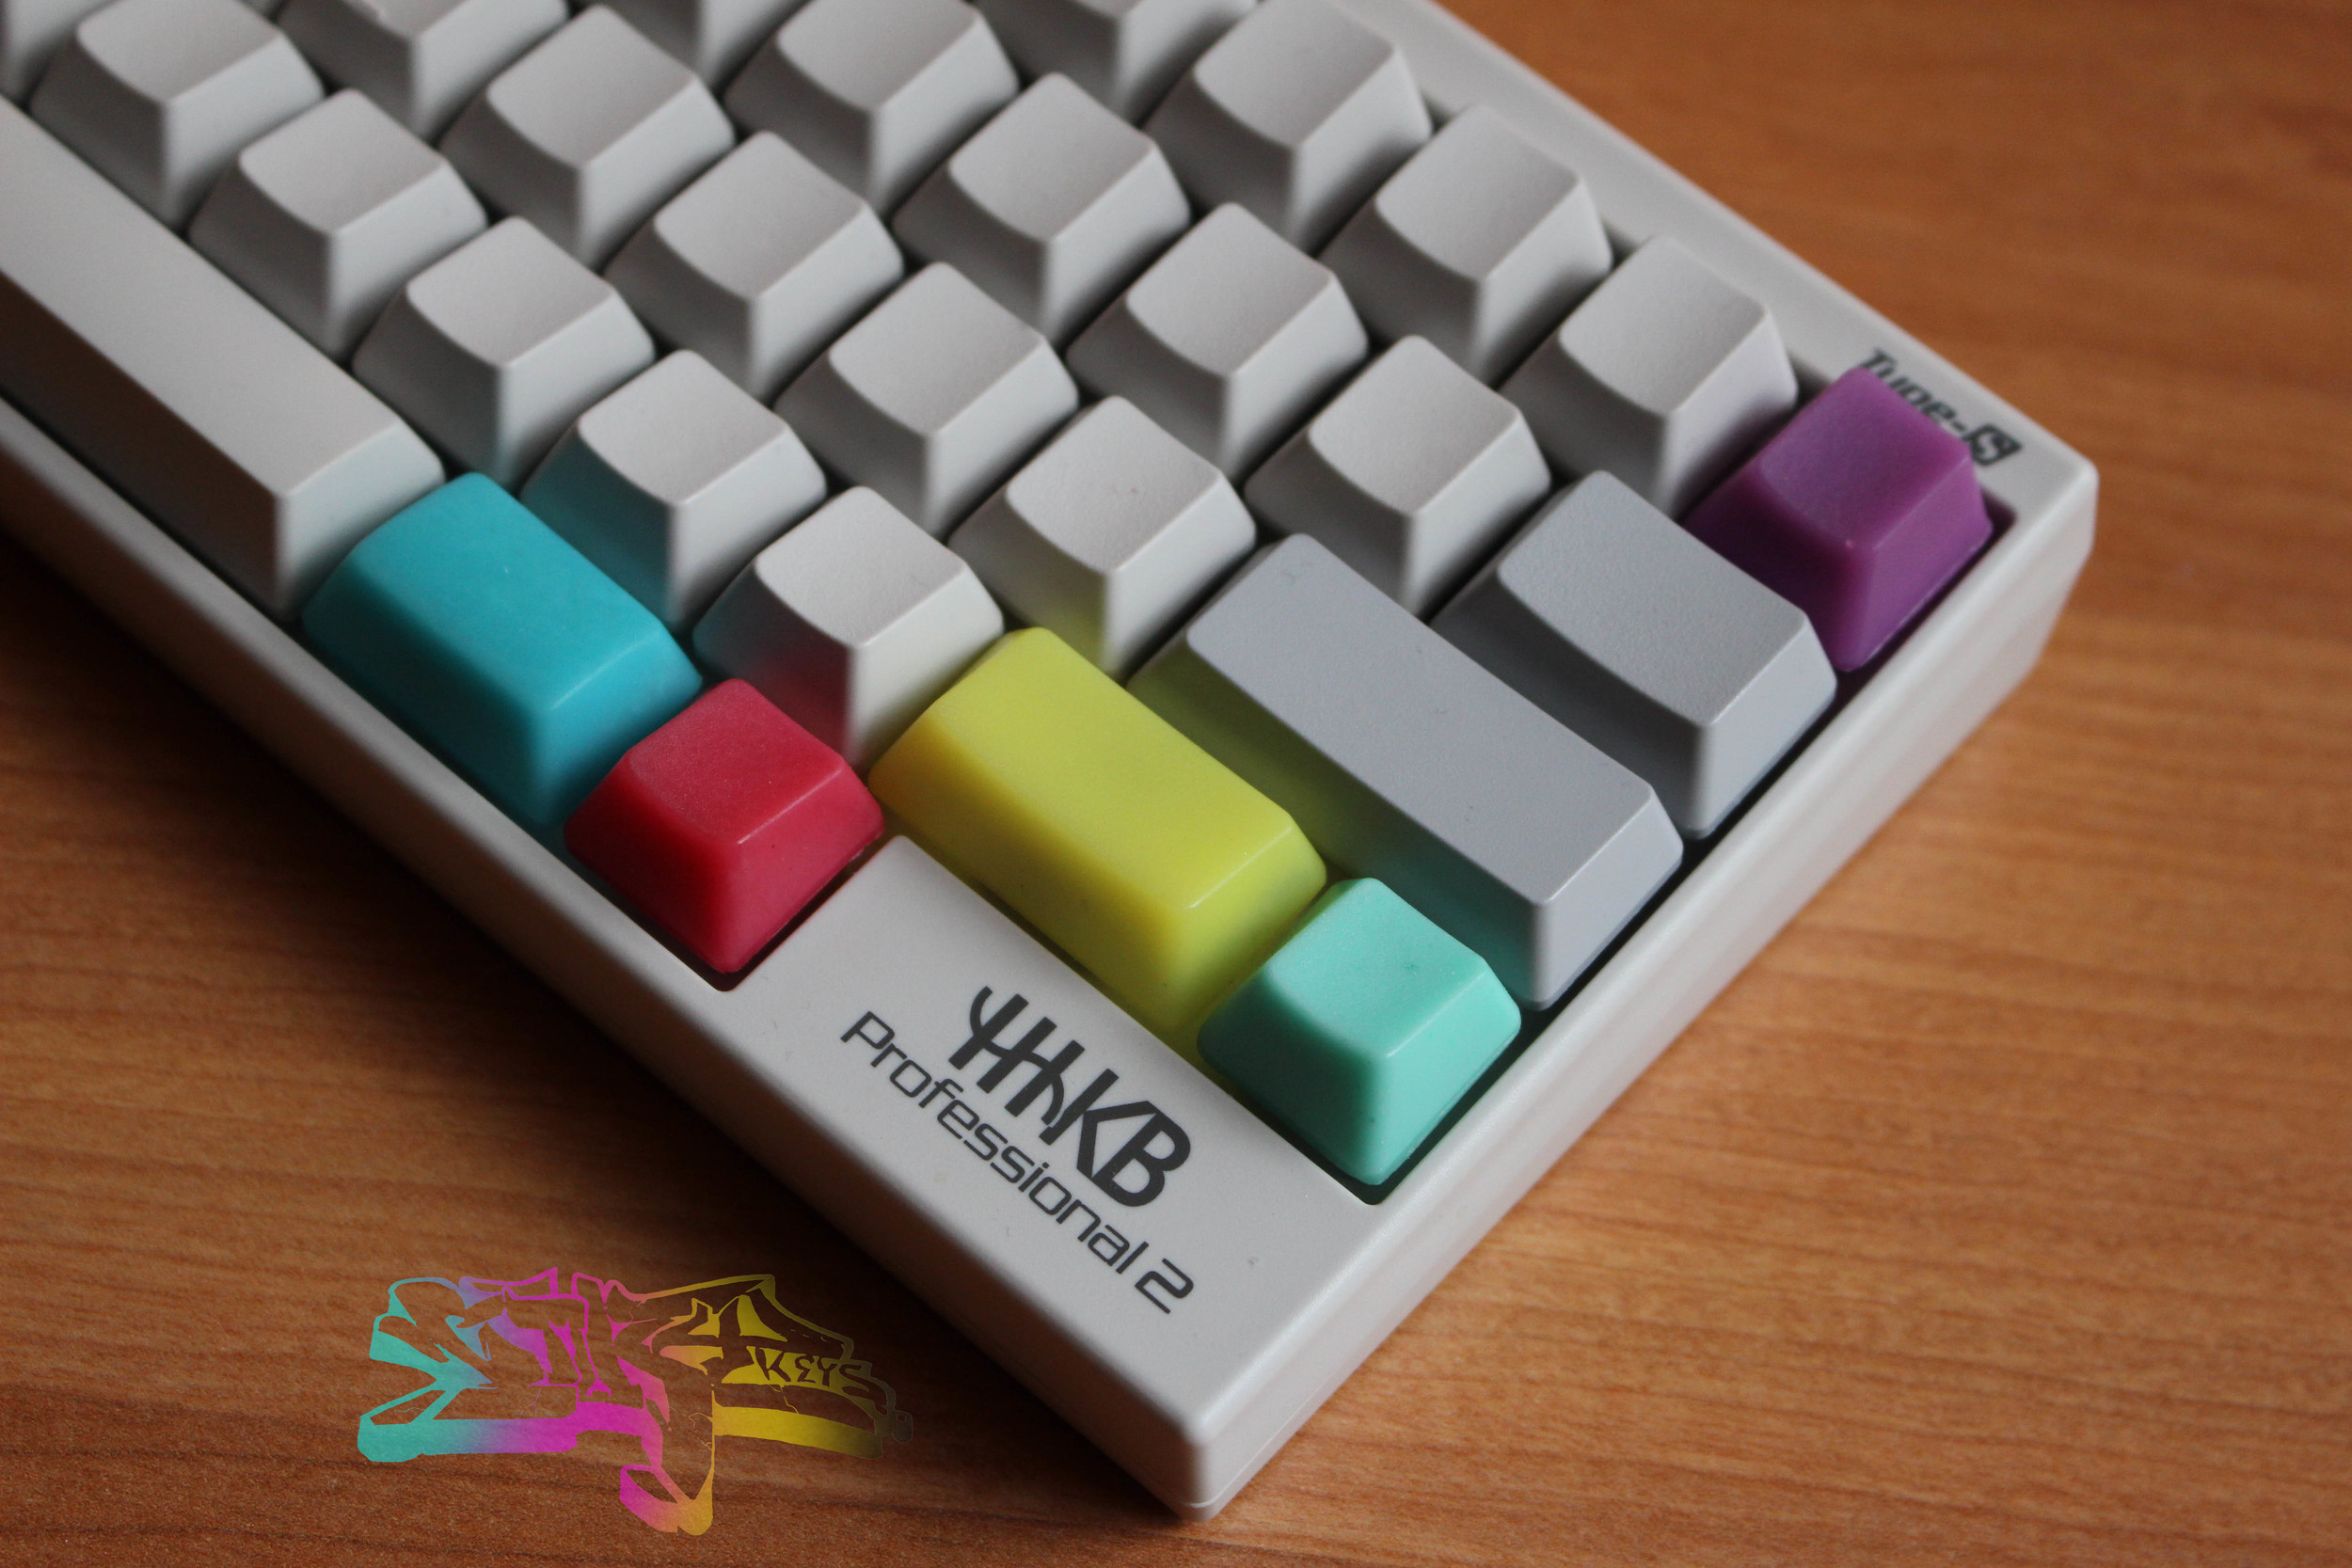 CMYKeys Modifiers β   HHKB Set (Shift,Alt,Fn,R1) -$25  Realforce Set (Shift, Alt, Ctrl, Inverted Ctrl, R1) - $28  NAV/WASD Clusters - $10  Double Pour R1 (C,M,Y) - Free with purchase of $50 or more